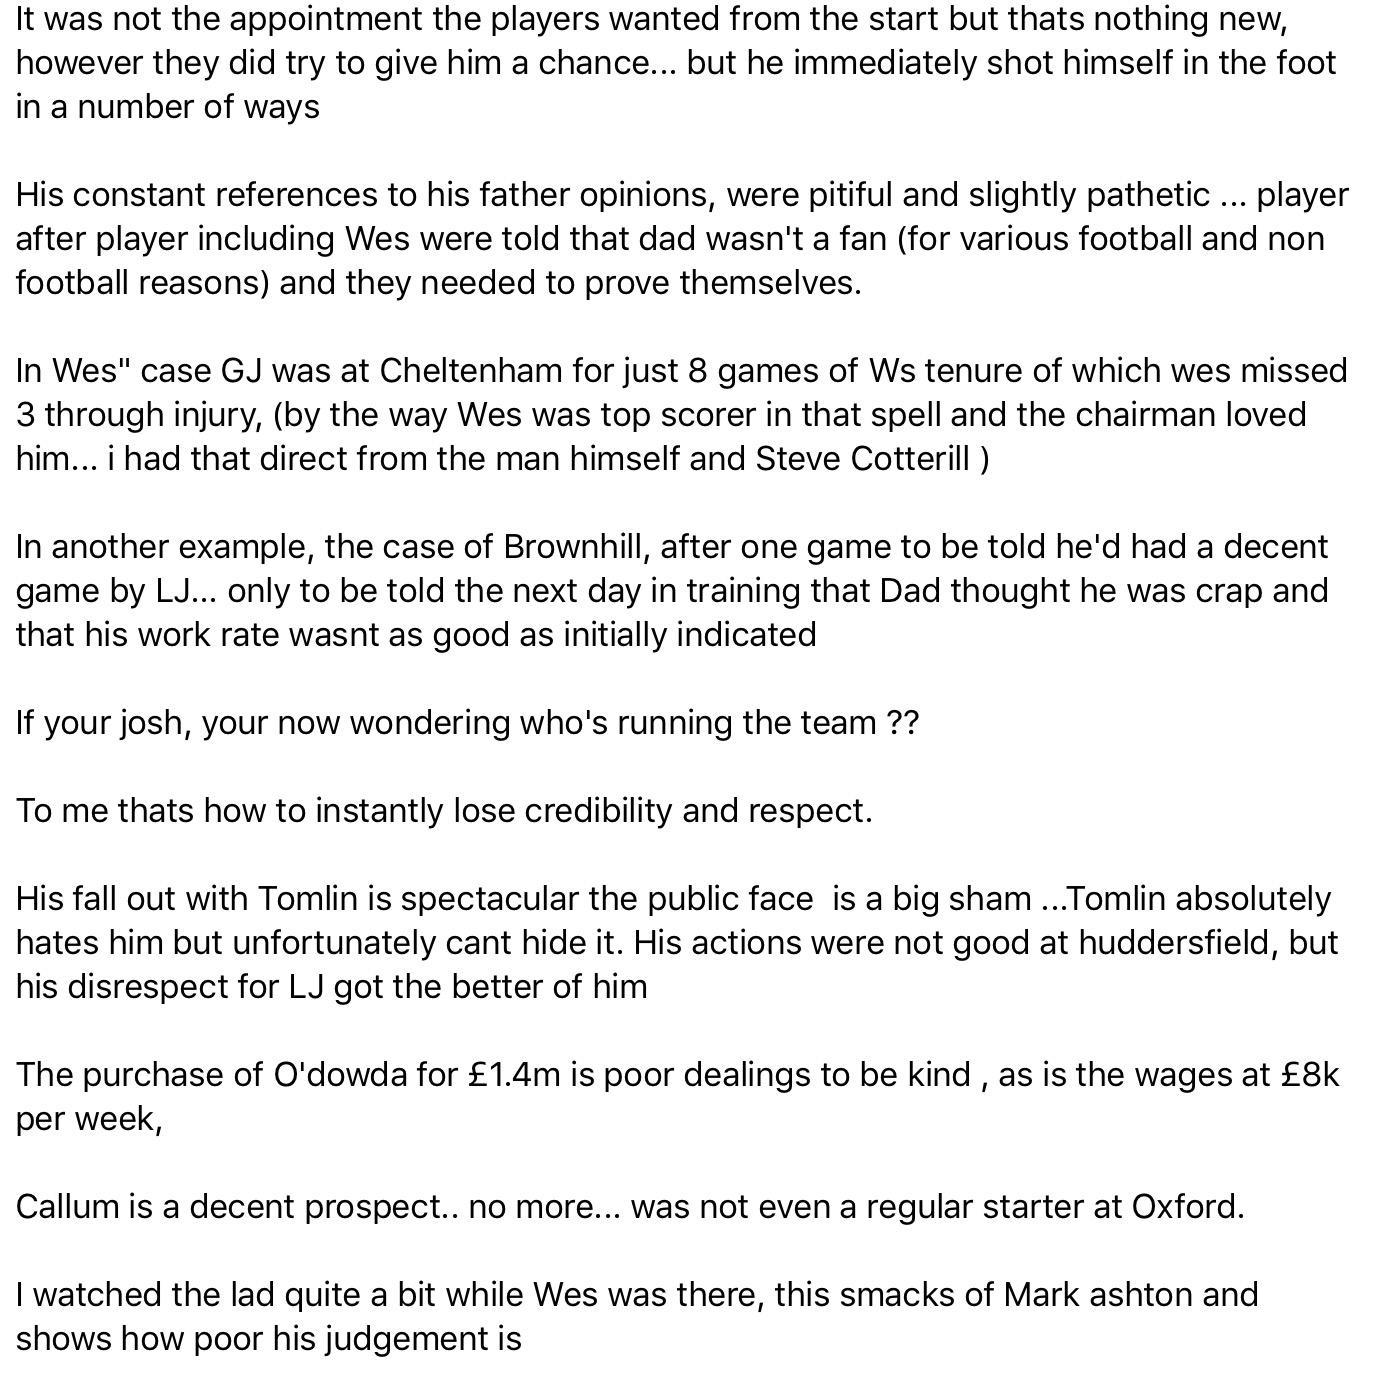 interesting reading football chat one team in bristol 0465 thumb png f469a99968e35618ffed2f0f98ef1893